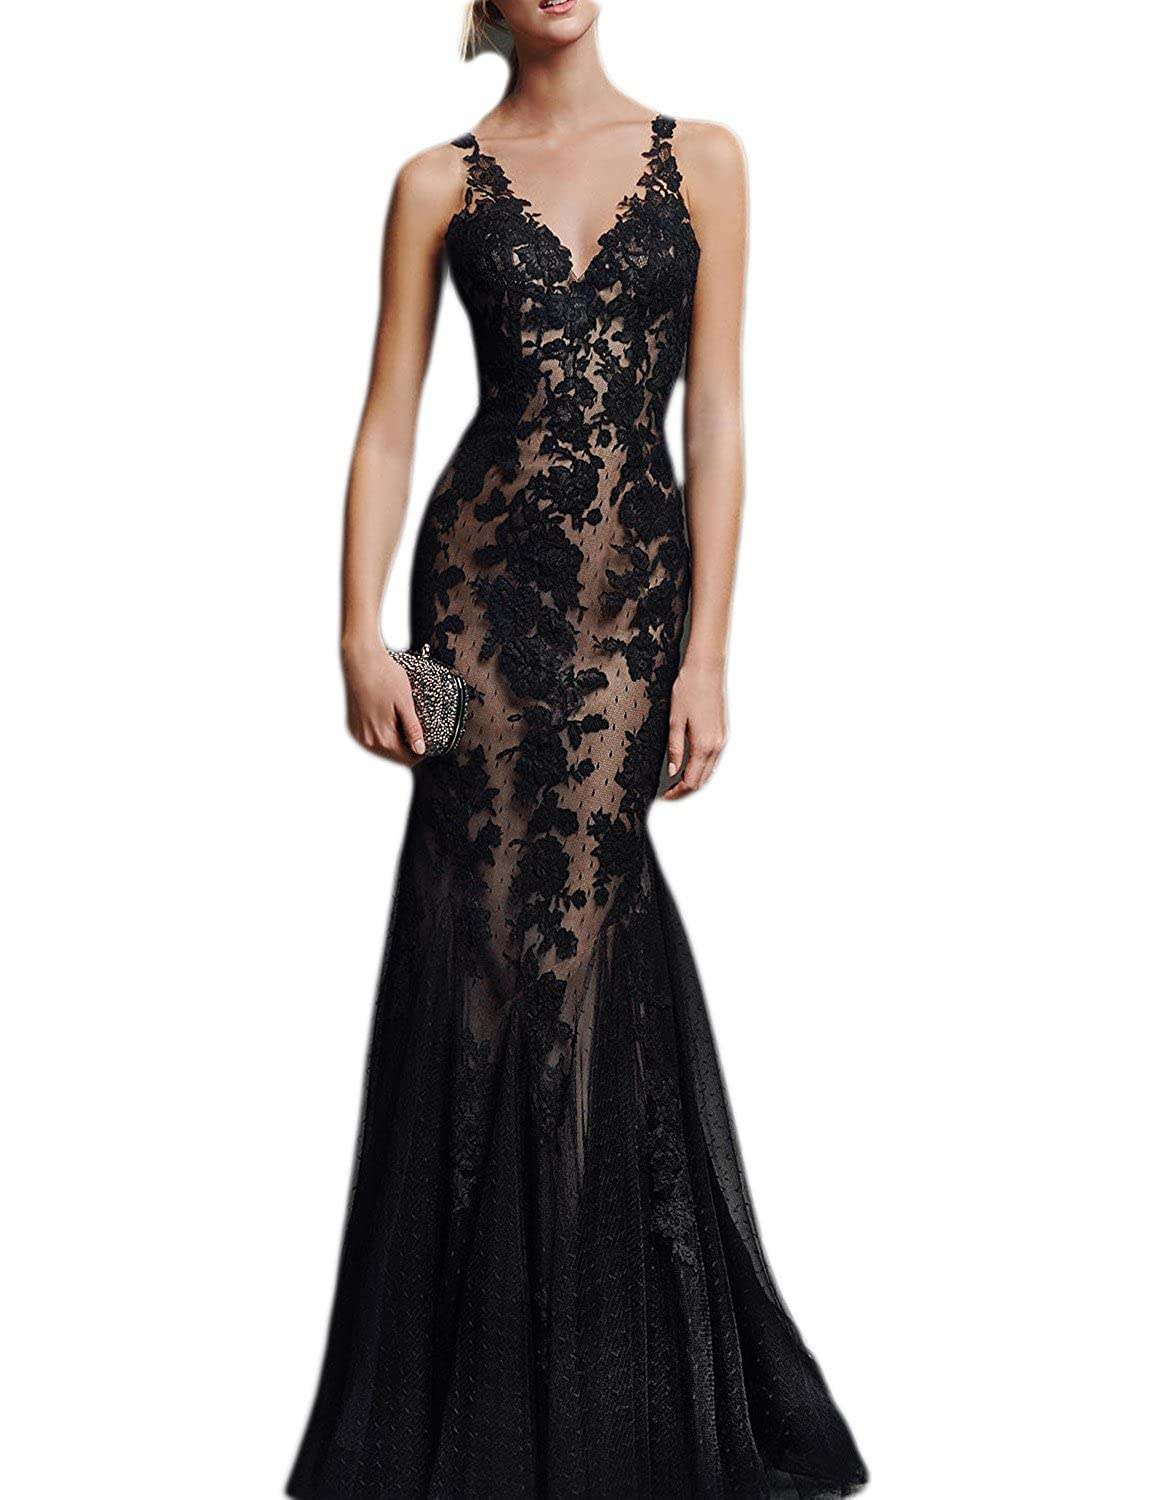 2016 V-neck Long Backless Evening Gown Sexy Lace Mermaid Prom Dress Trumpet  Wedding Party Dress Fabric  Satin   Lace. Backless with Zipper Closure 05510c9a6761